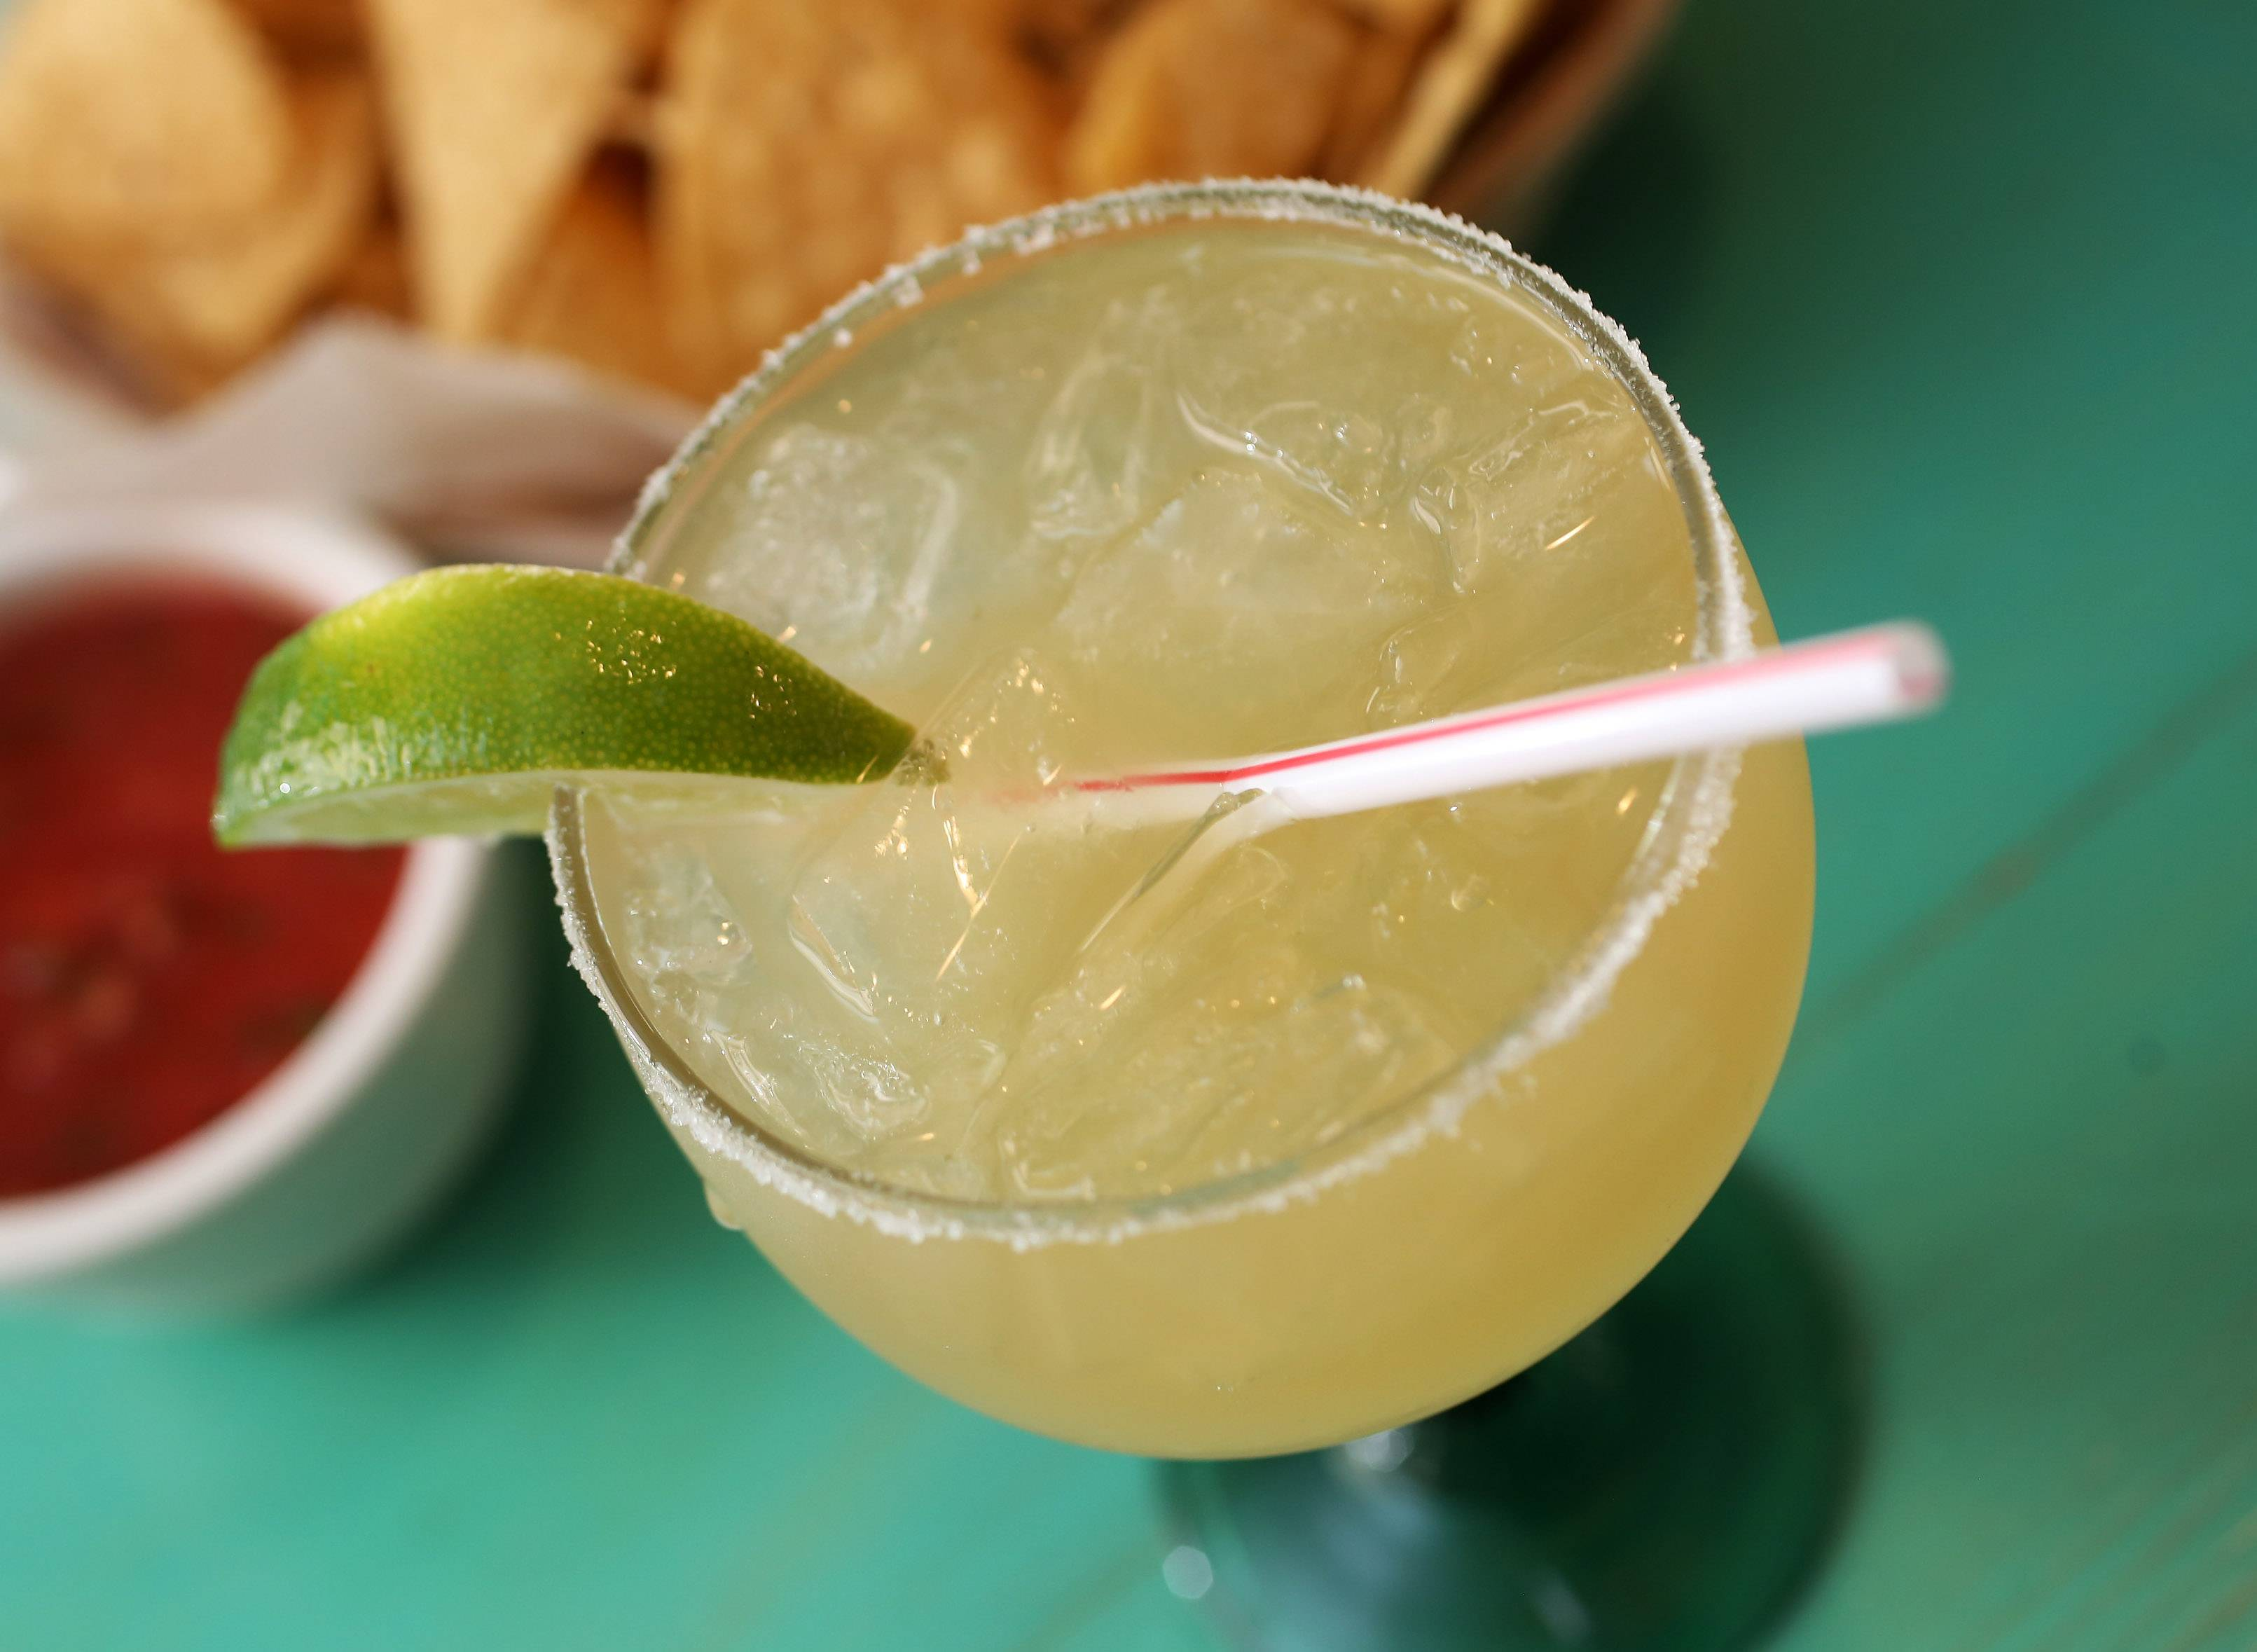 The deck at El Puerto is the beautiful place to enjoy the Ultimate Margarita.